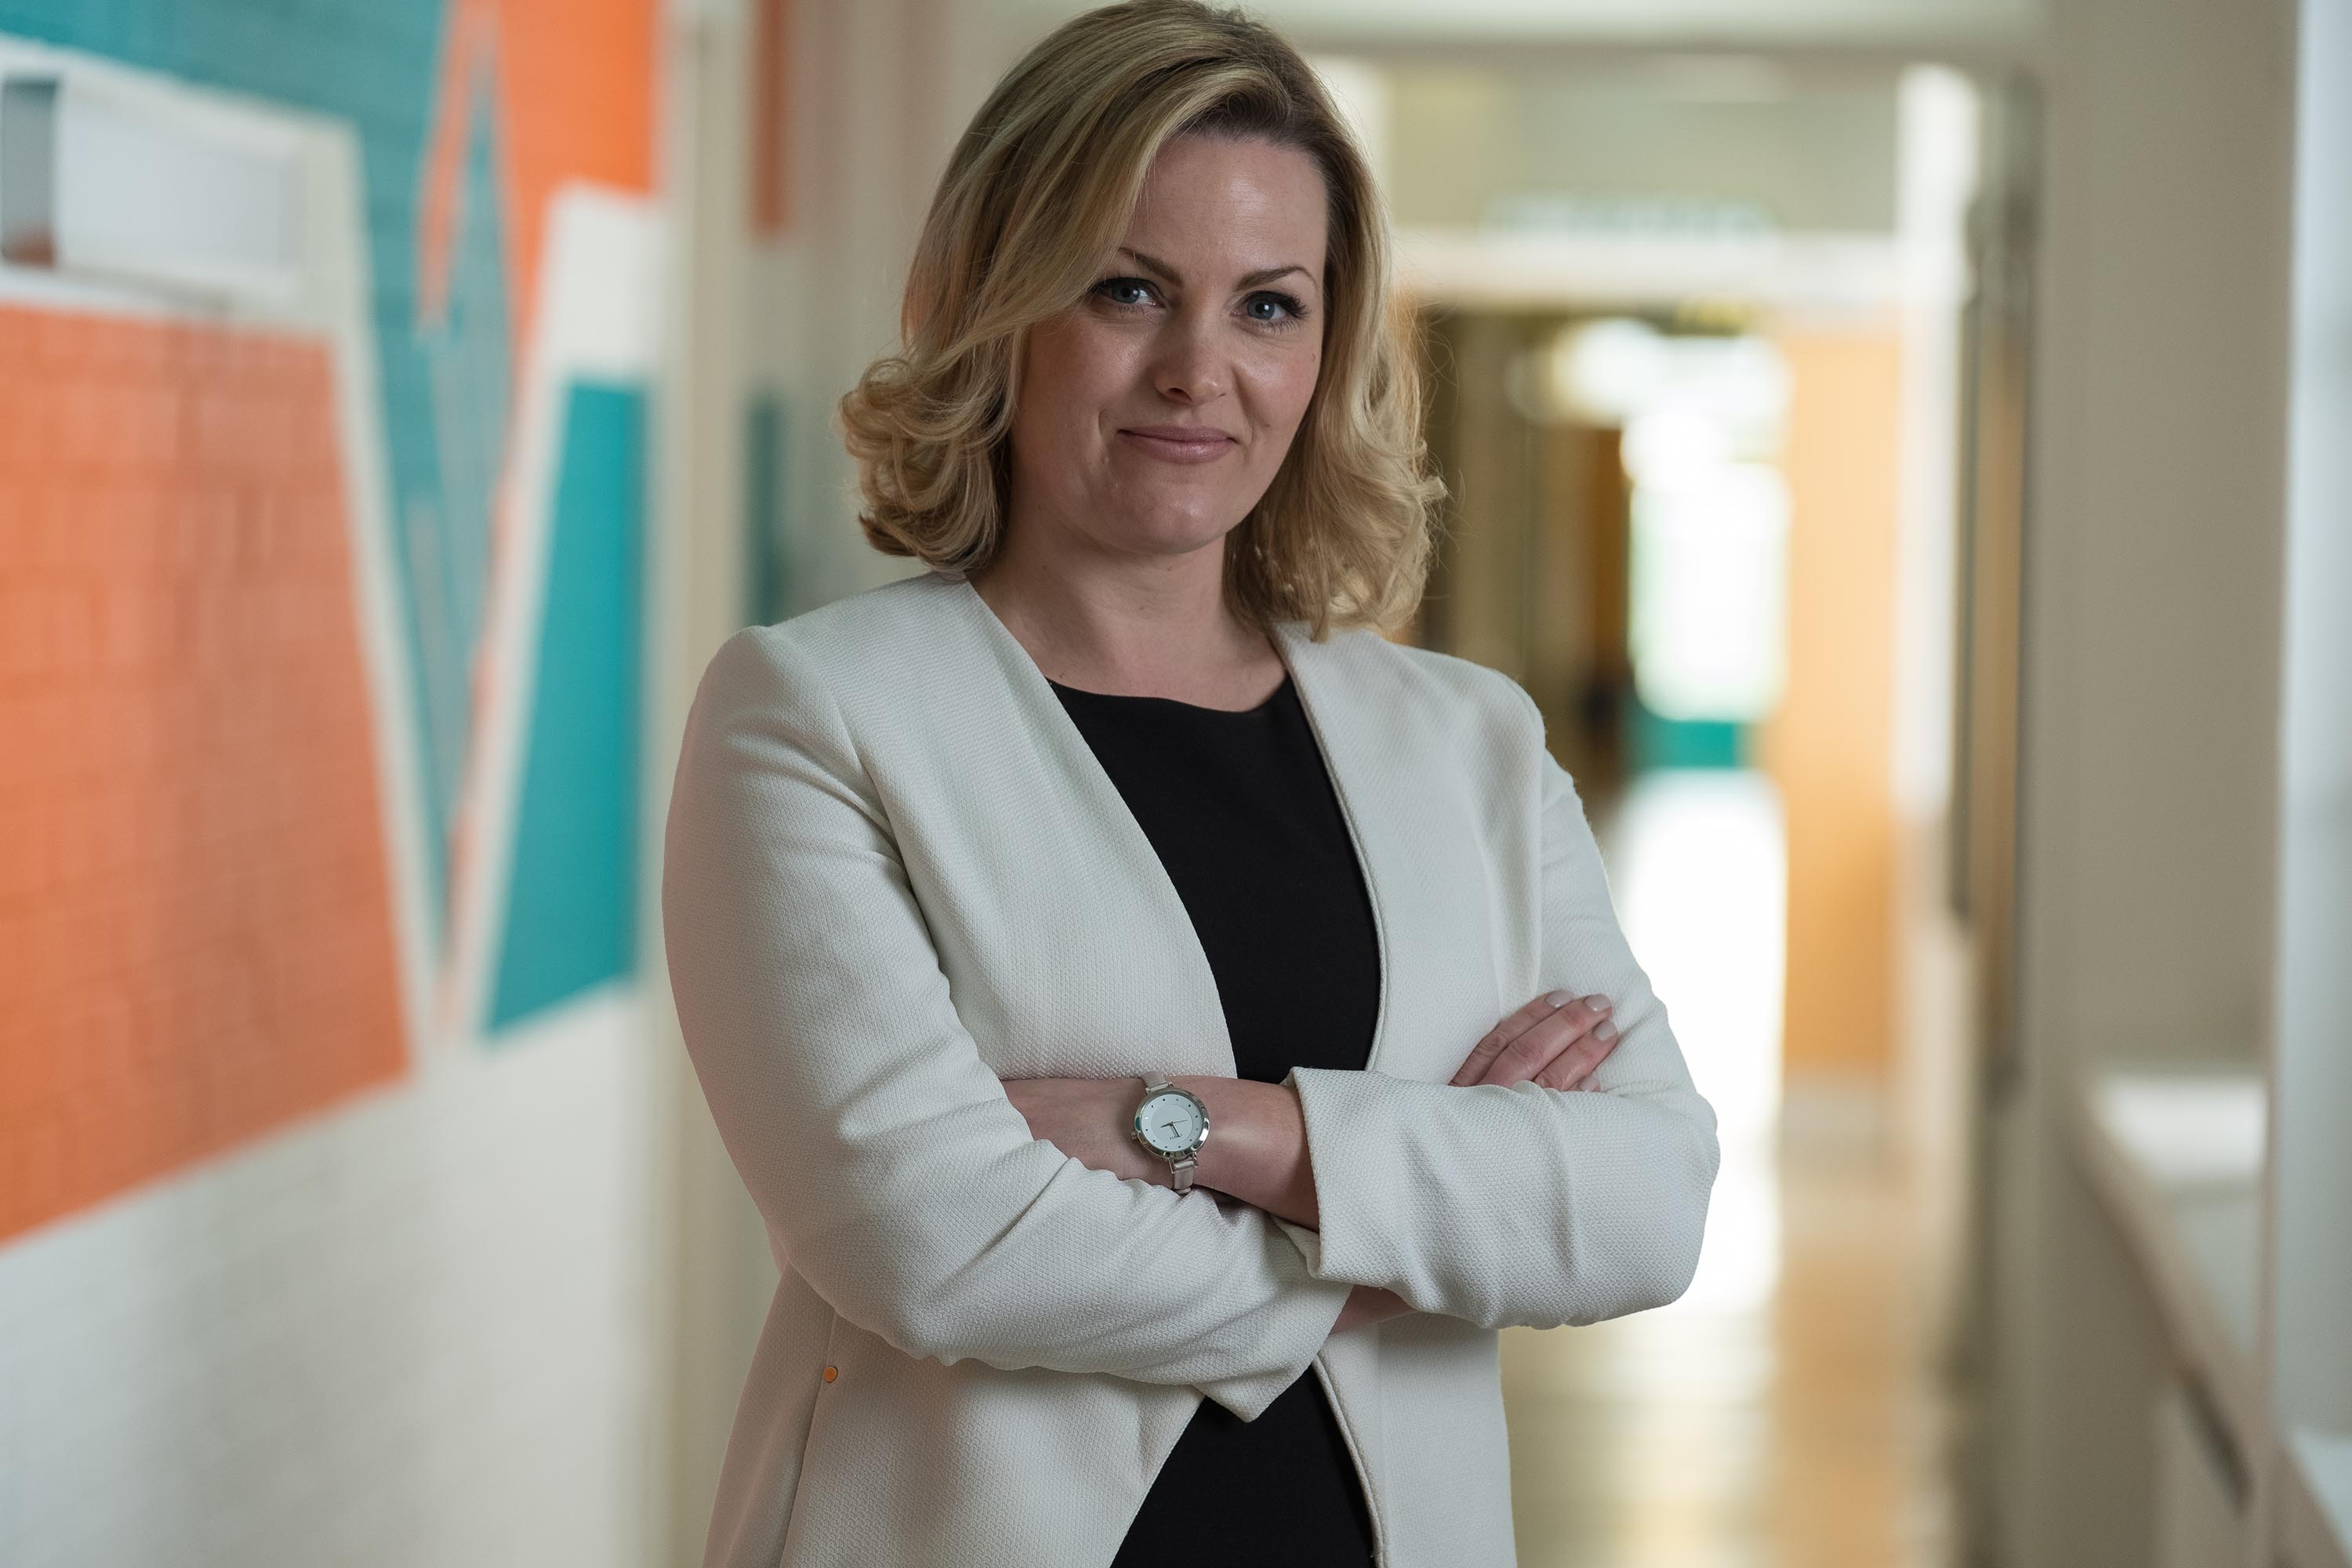 Ex EastEnders star Jo Joyner reveals school drama Ackley Bridge gossip and is excited to be working with best friend Sunetra Sarker again